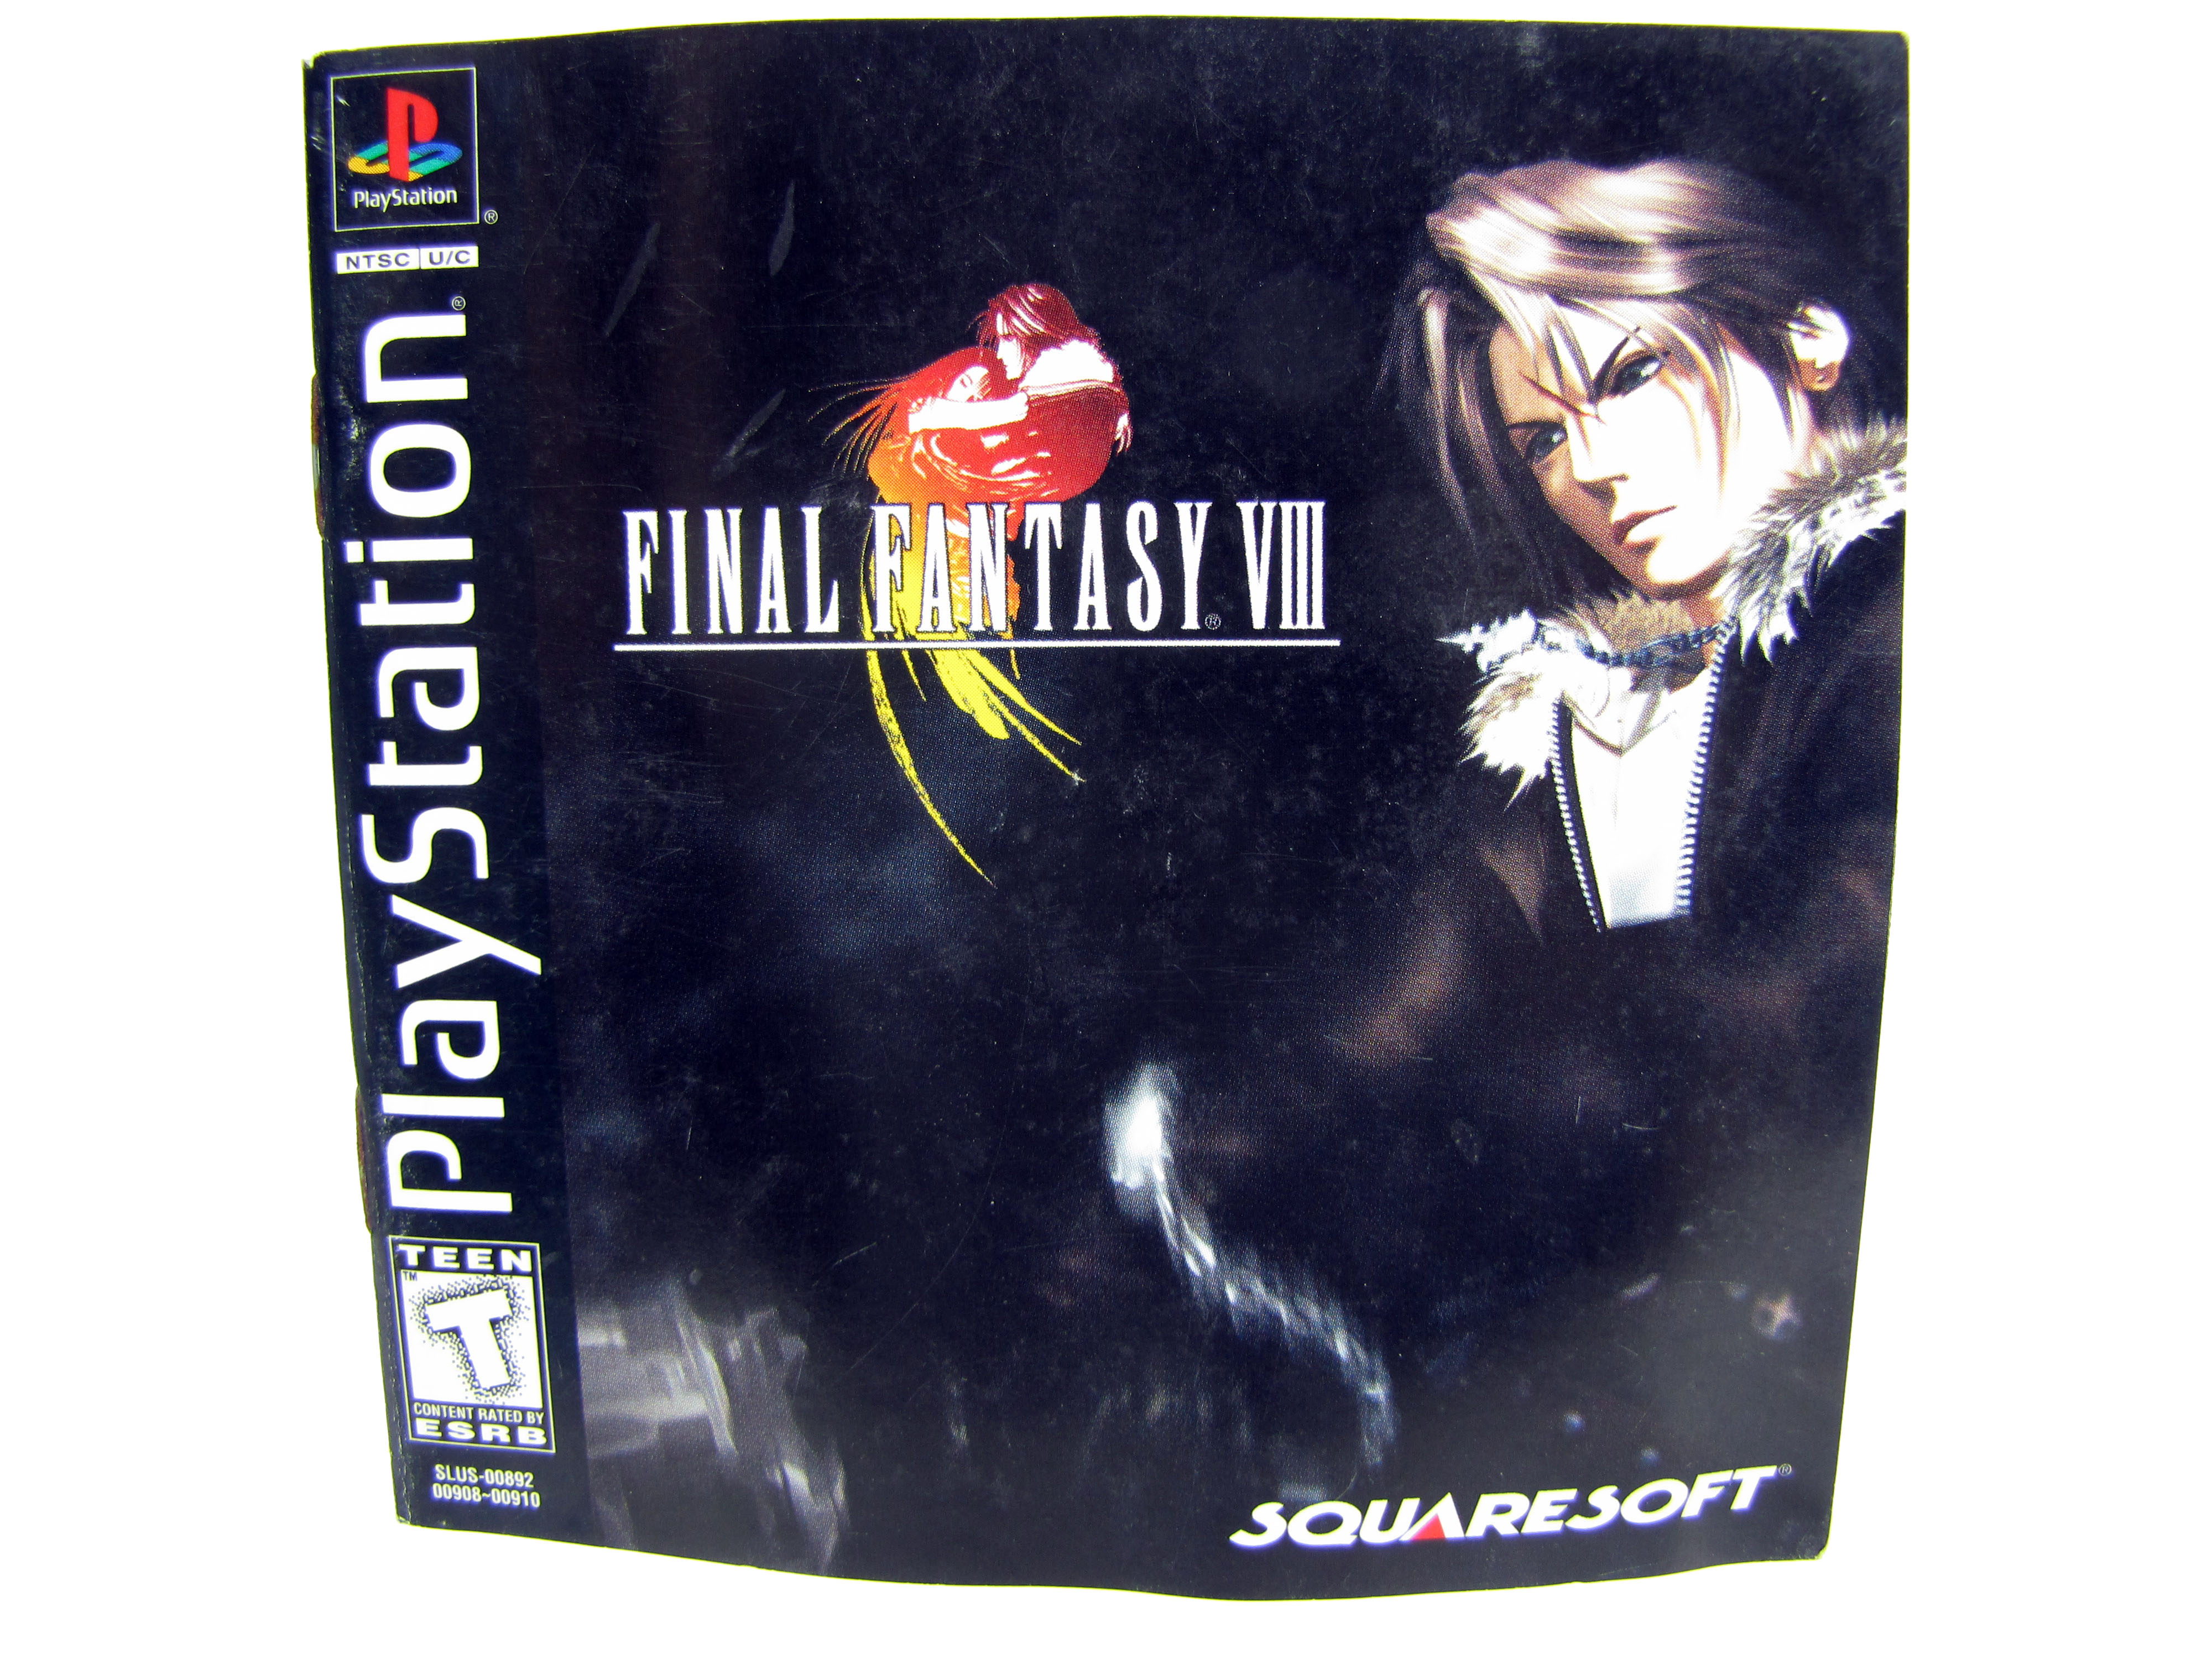 PS1 Final Fantasy VIII Instruction Booklet - 1999